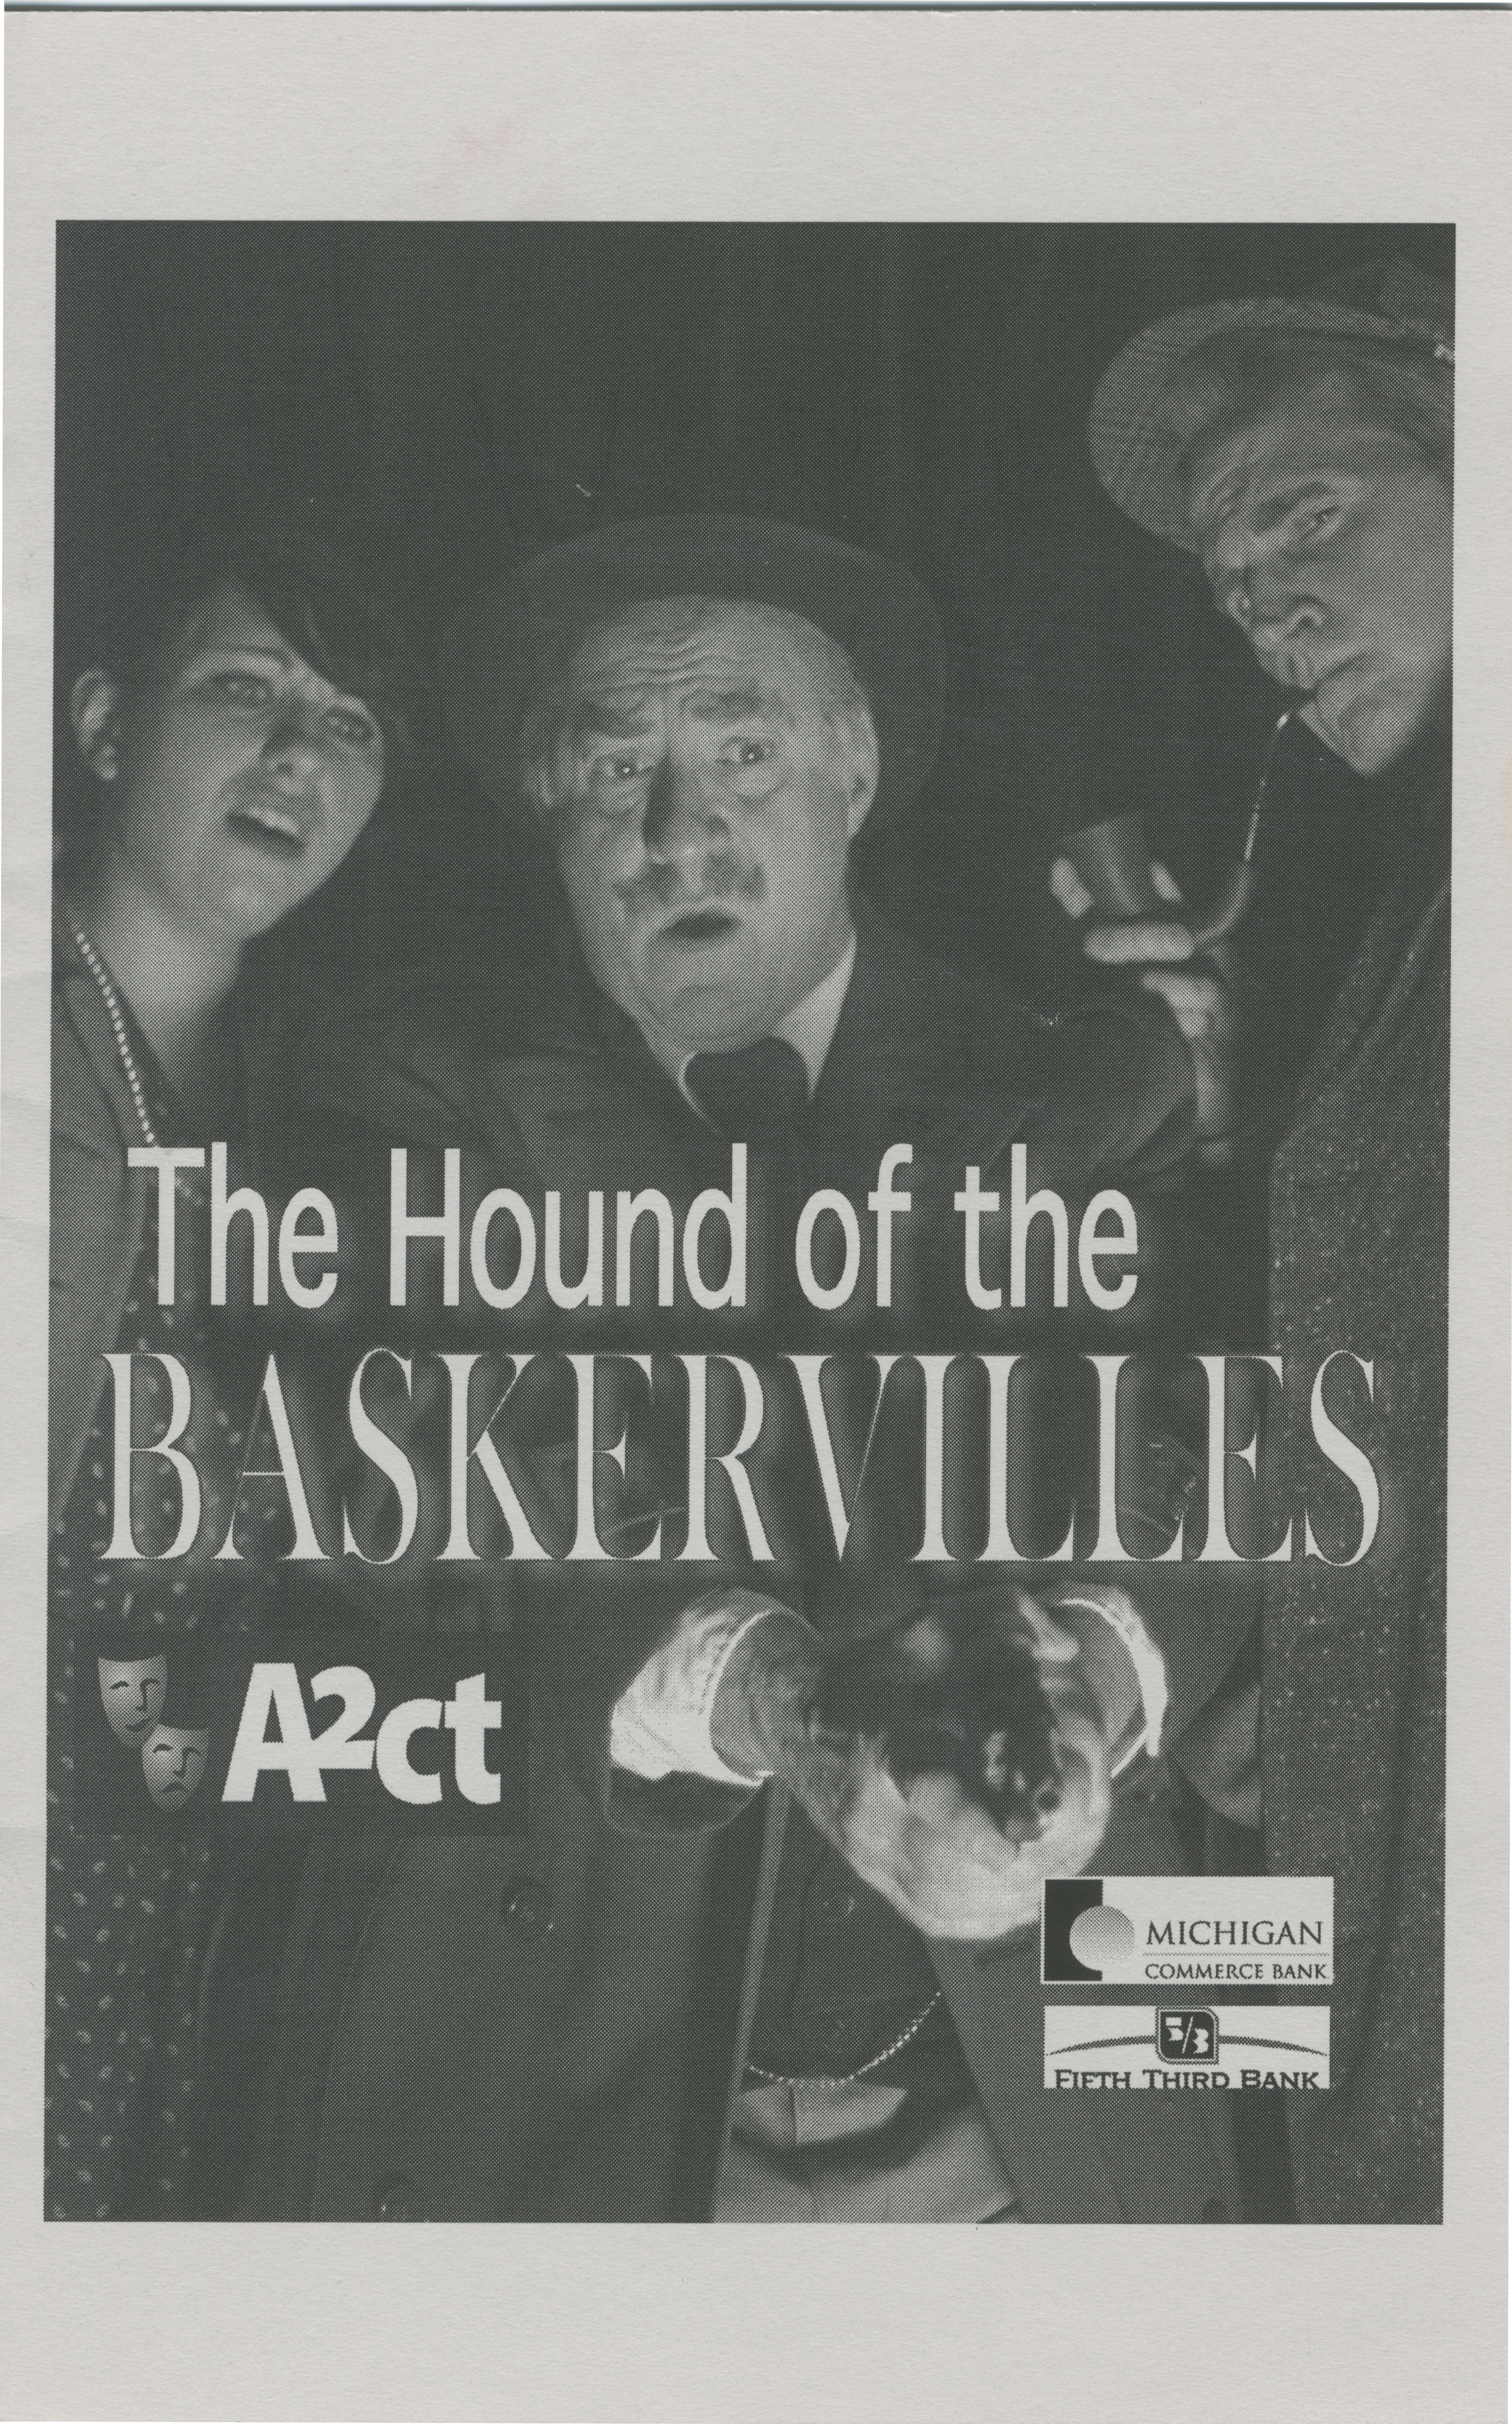 Ann Arbor Civic Theatre Program: The Hound of the Baskervilles, March 11, 2010 image